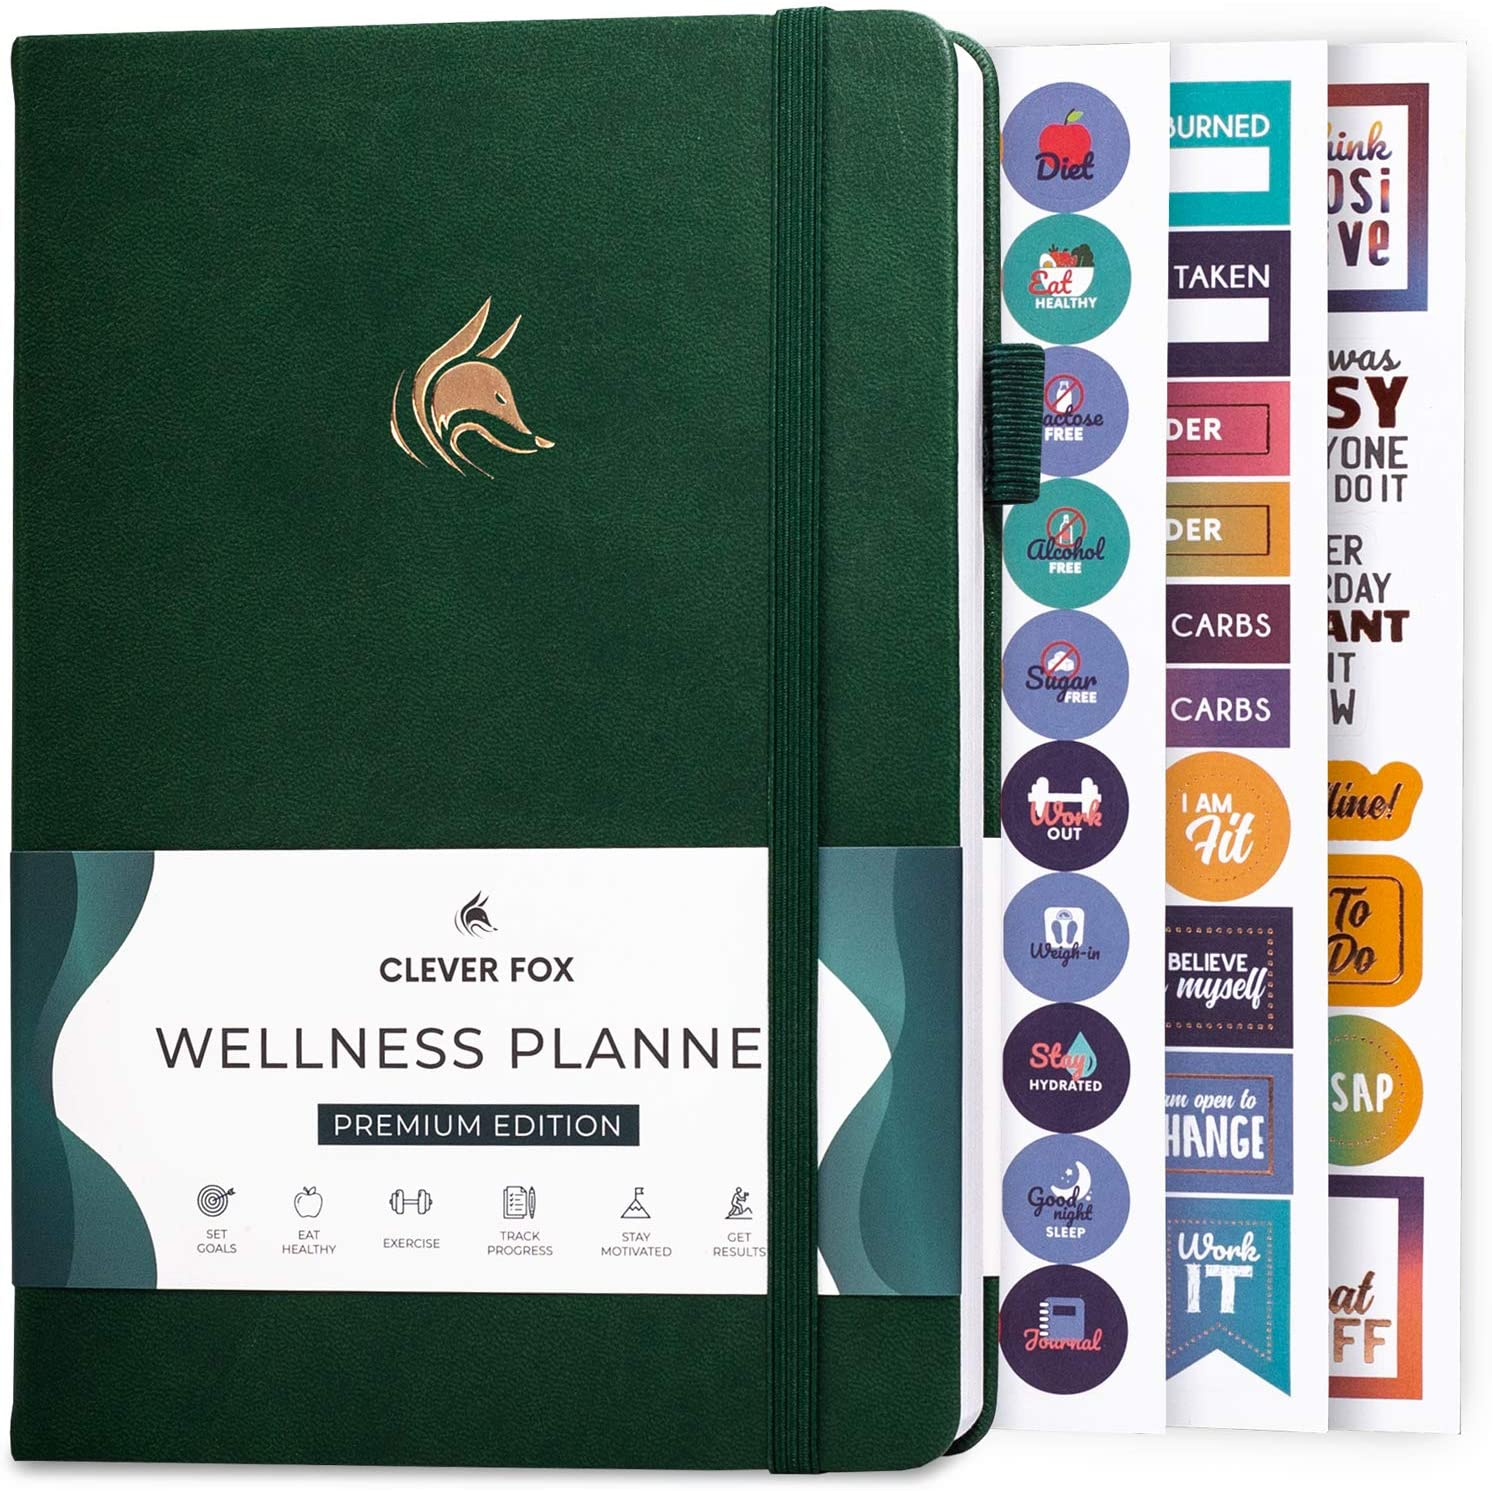 Clever Fox Wellness Journal - Weekly & Daily Health and Wellness Log, Food Journal & Meal Planner Diary for Calorie Counting, Notebook for Medical Condition Tracking, A5-Sized - Forest Green